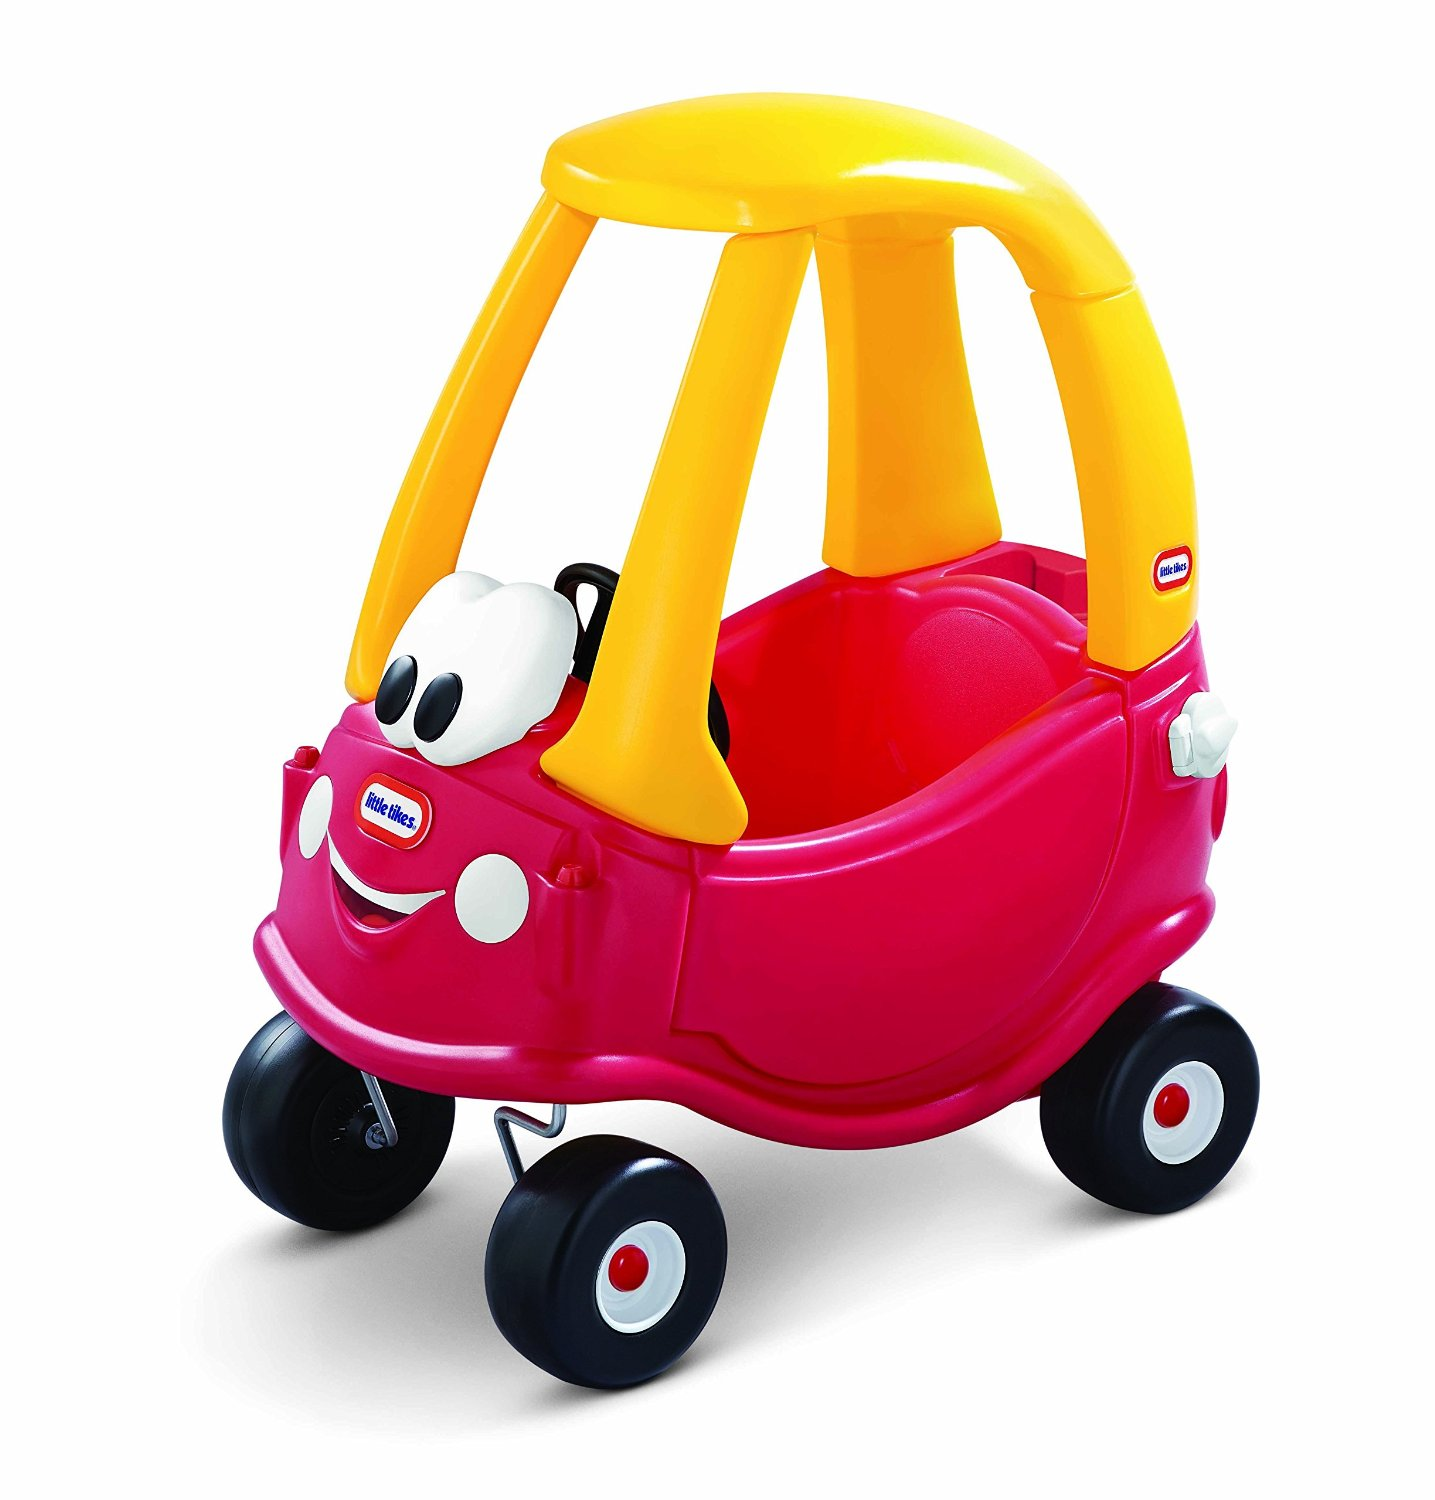 Little Tikes Cozy Coupe Review - Kids Toys News